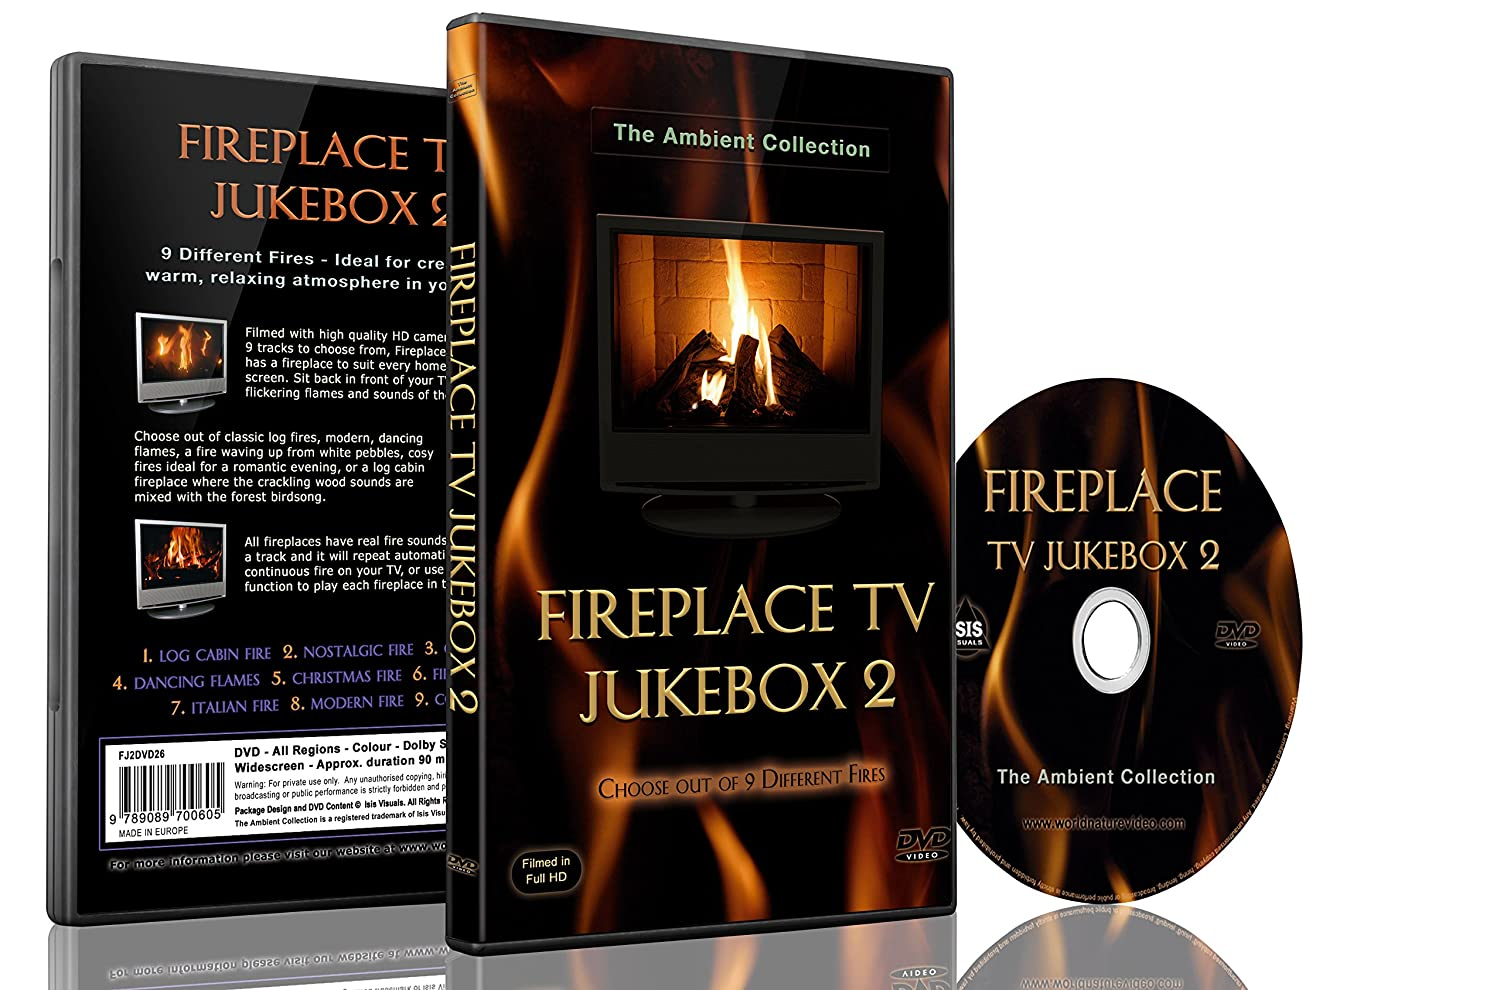 fire dvd fireplace tv jukebox 2 choose out of 9